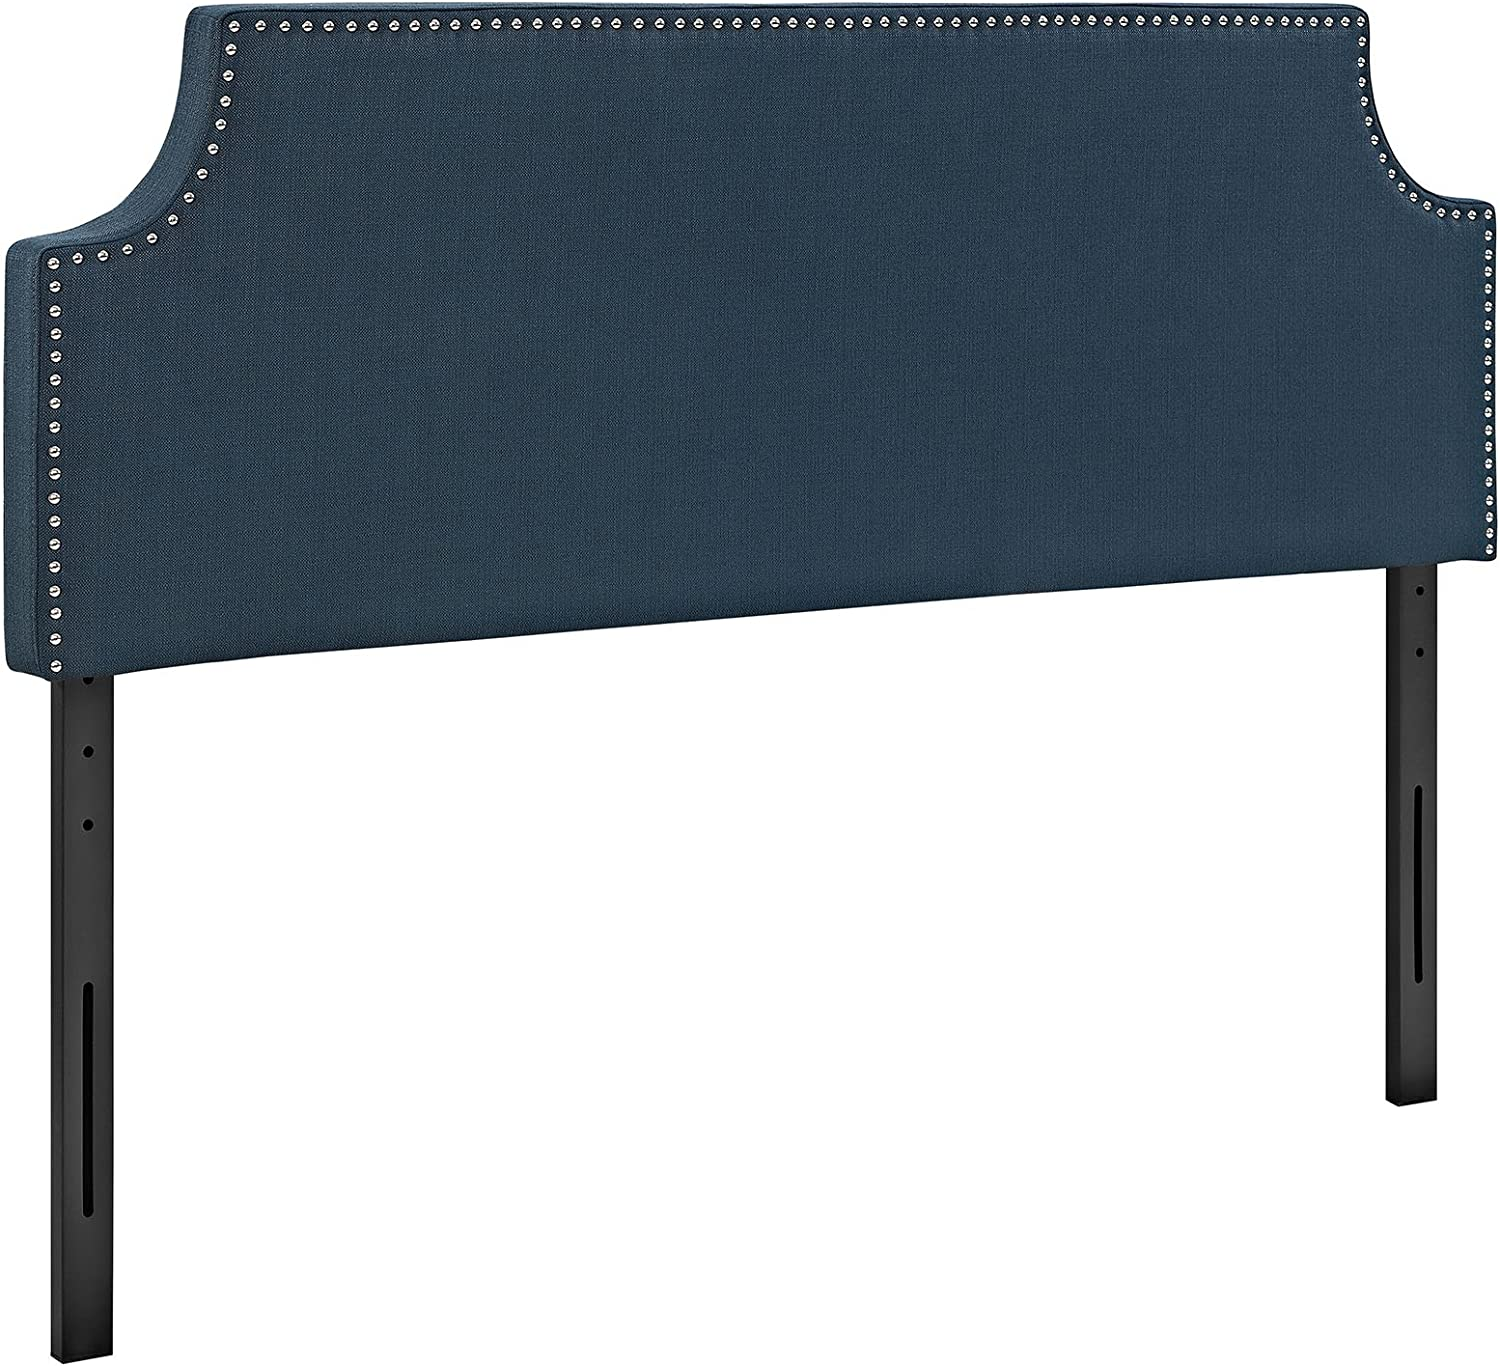 Modway Laura Linen Fabric Upholstered Queen Size Headboard with Cut-Out Edges and Nailhead Trim in Azure